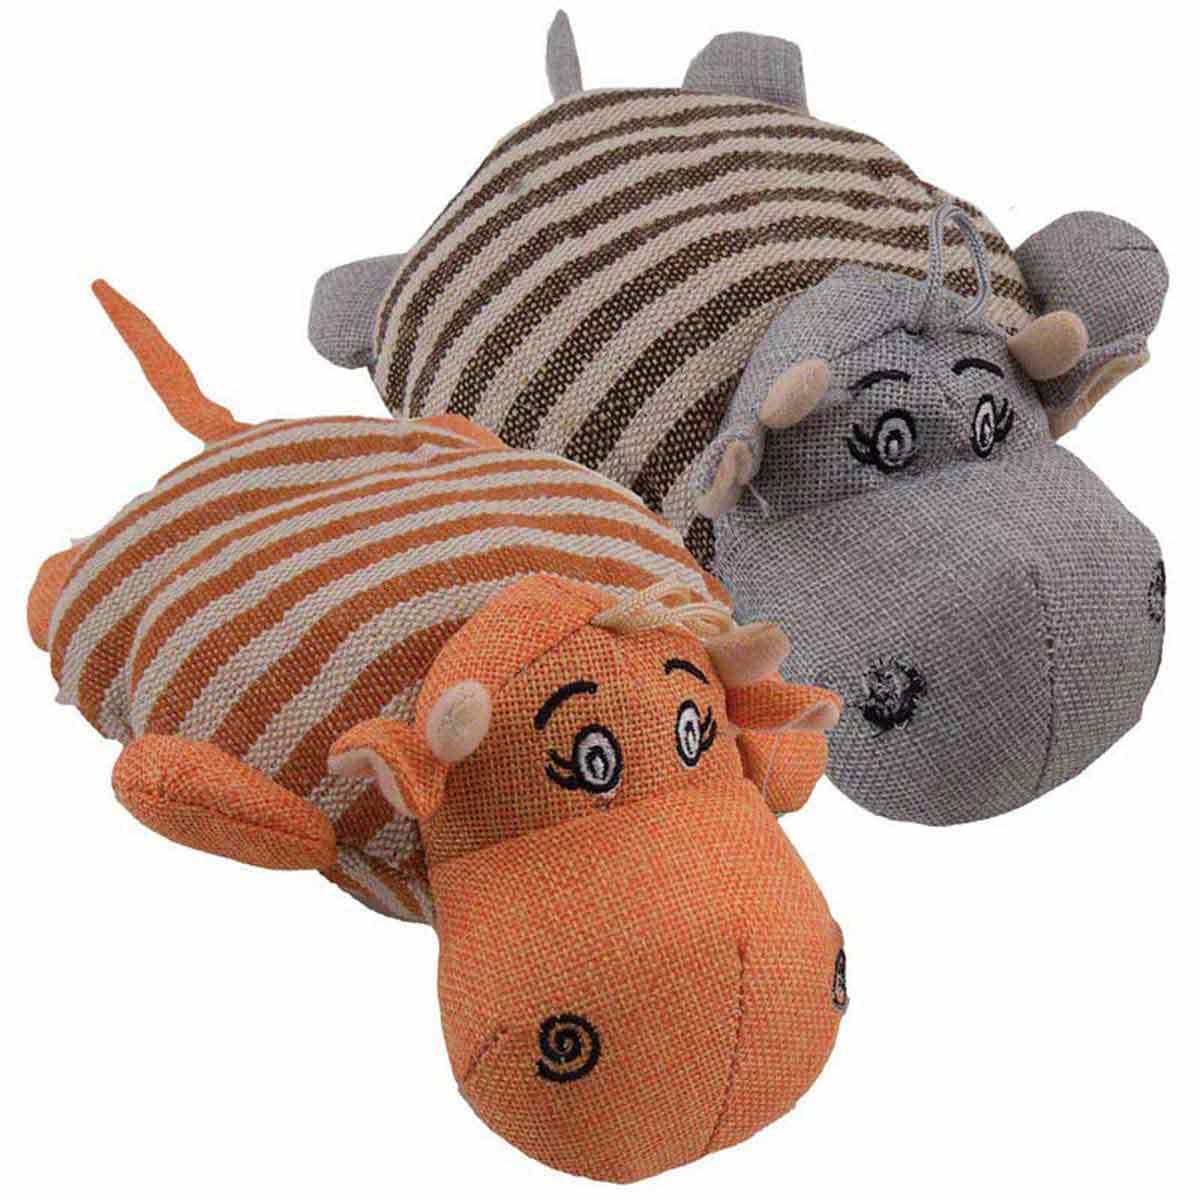 Dawgeee Toy Assorted Animals - 8 inches